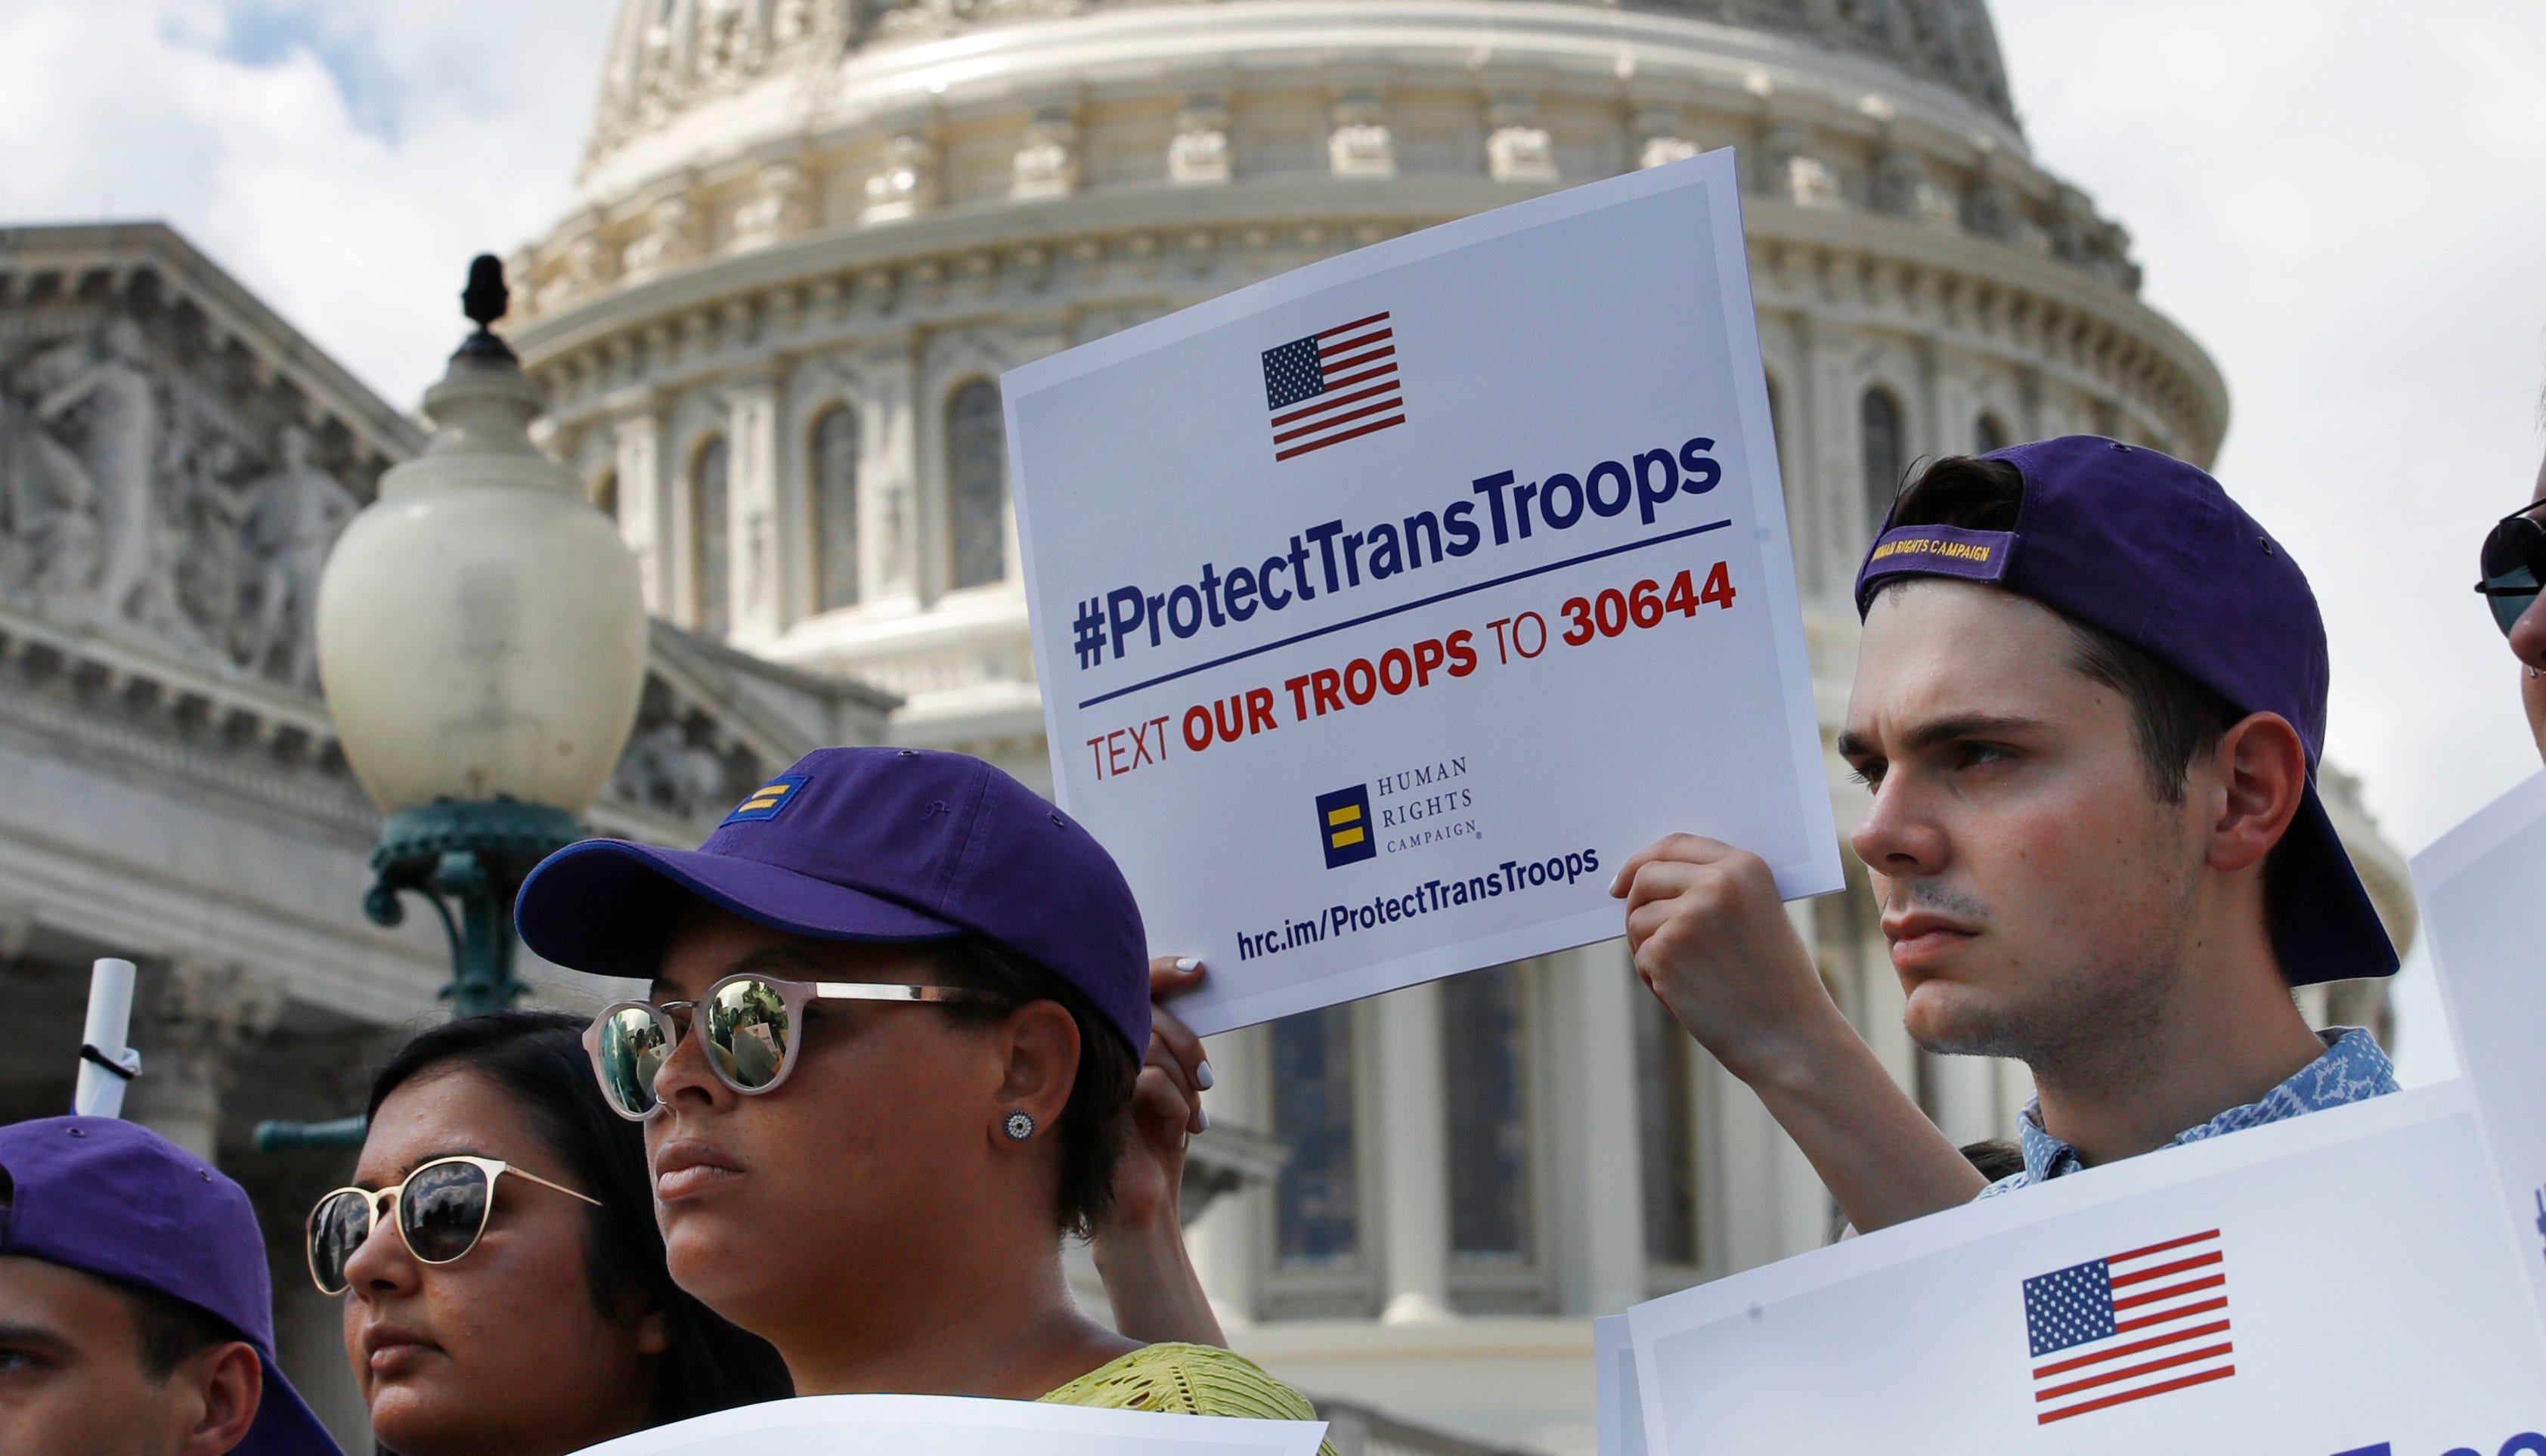 President Trump's ban on transgenders serving in the military produced protests in 2017.